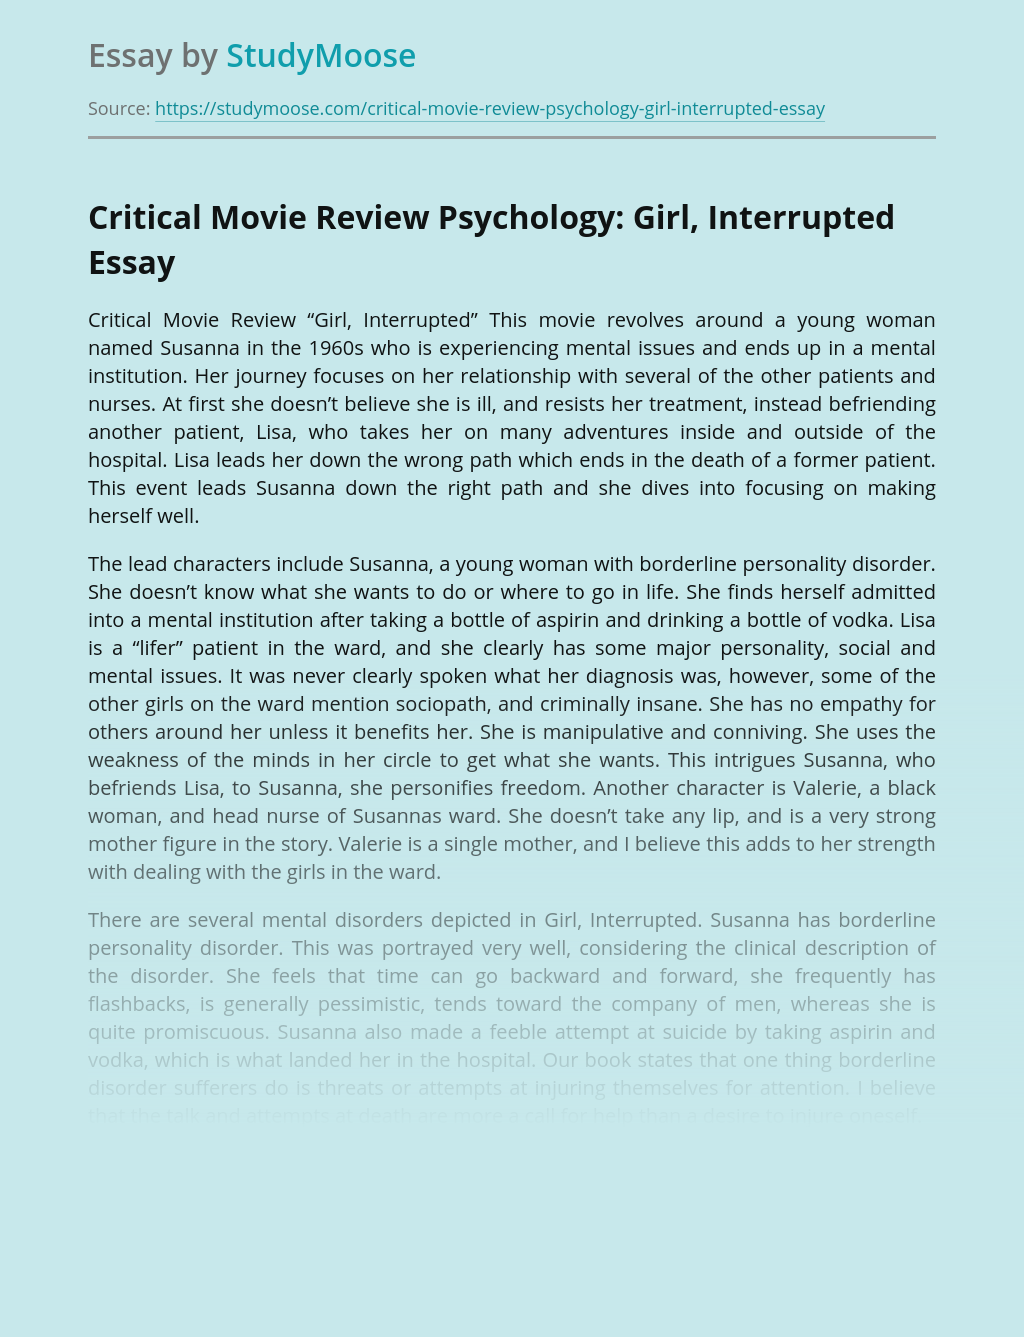 Critical Movie Review Psychology: Girl, Interrupted